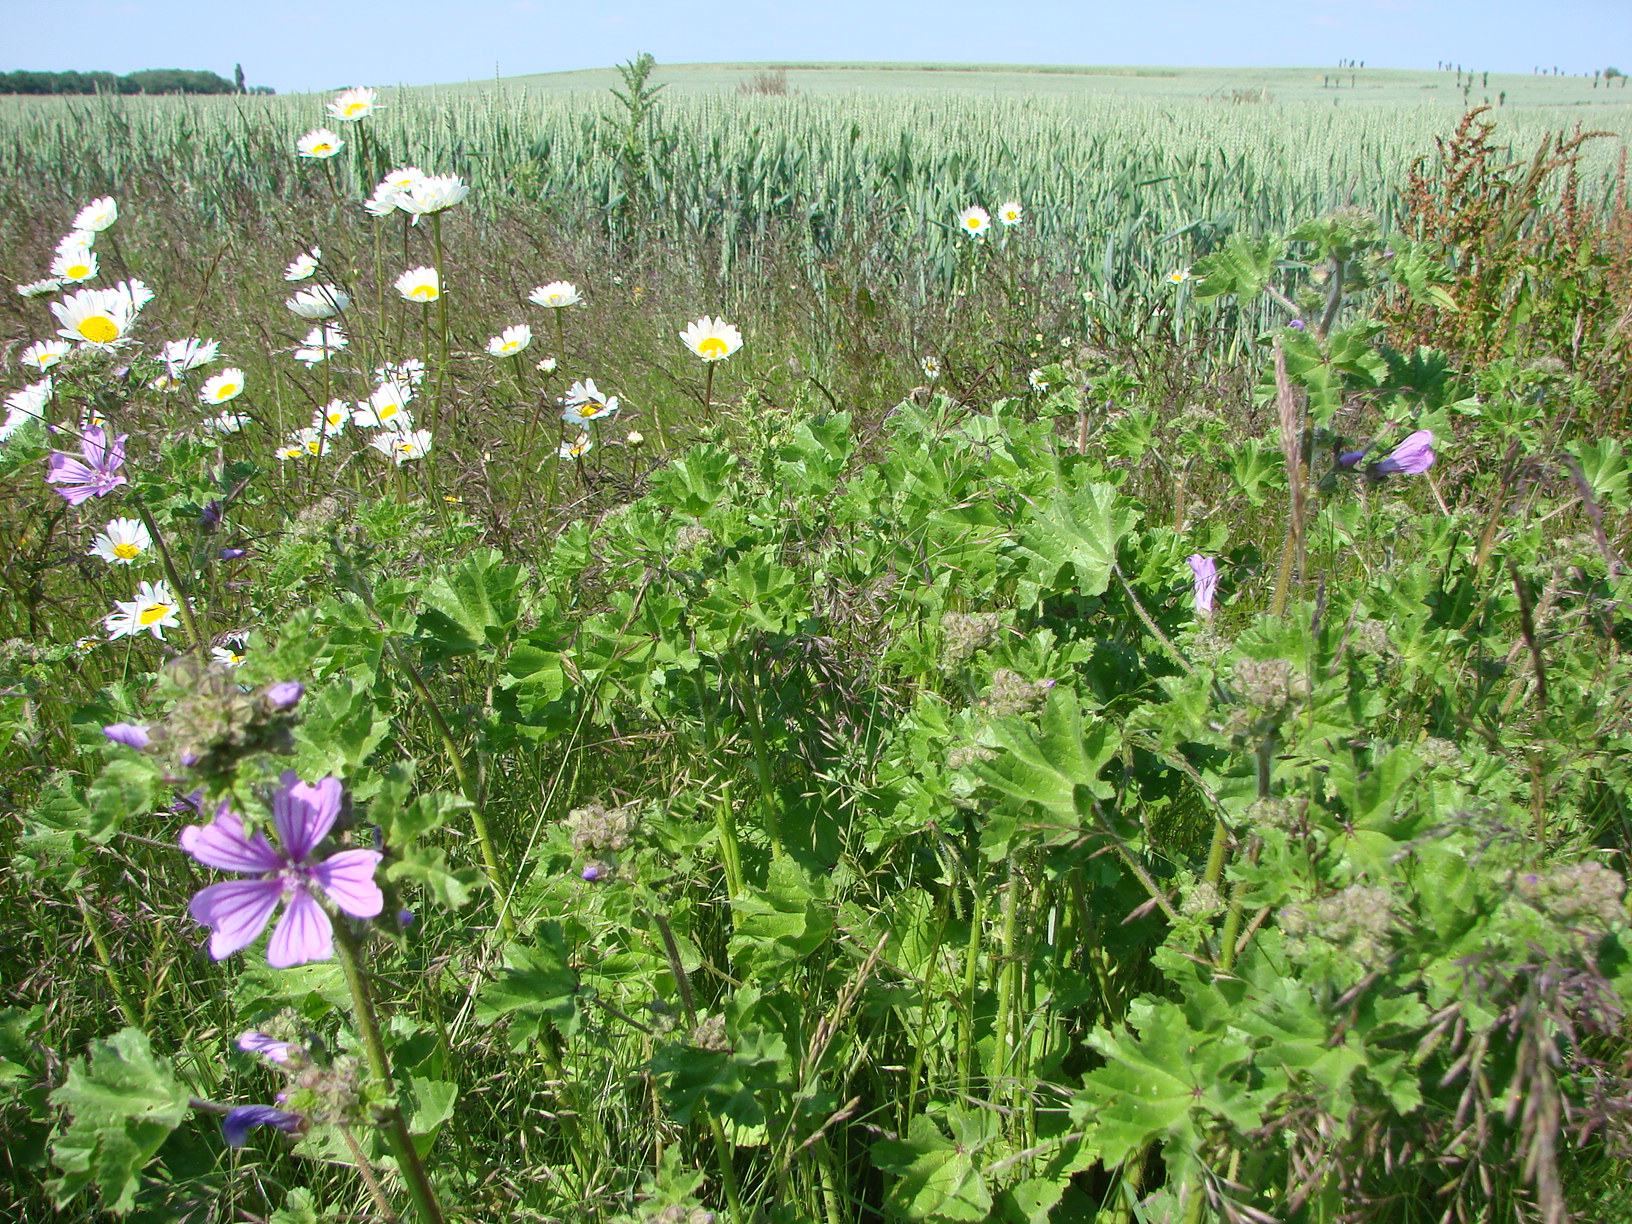 Wildflower strips at the edge of crop fields are being tested in conjunction with intercropping and living mulch to determine their impact on pests, disease and weeds. Image credit - Severin Hatt